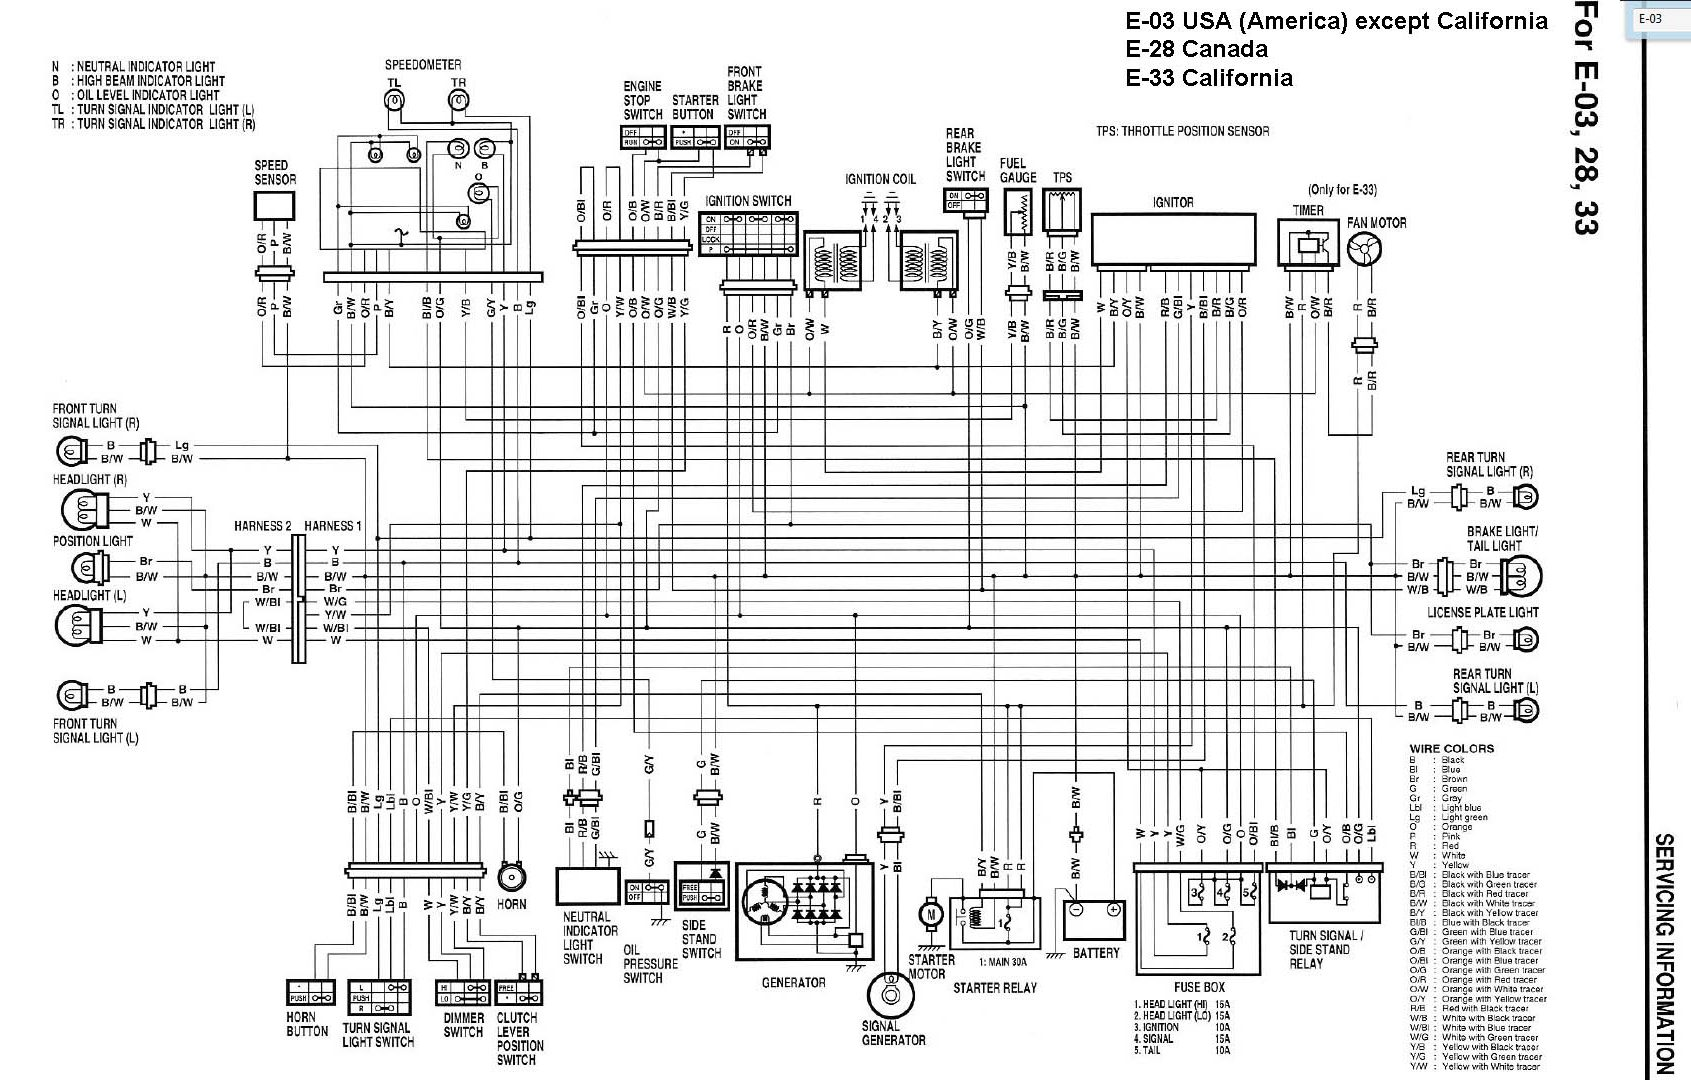 Enchanting American Standard Wiring Diagram Collection - Best Images ...